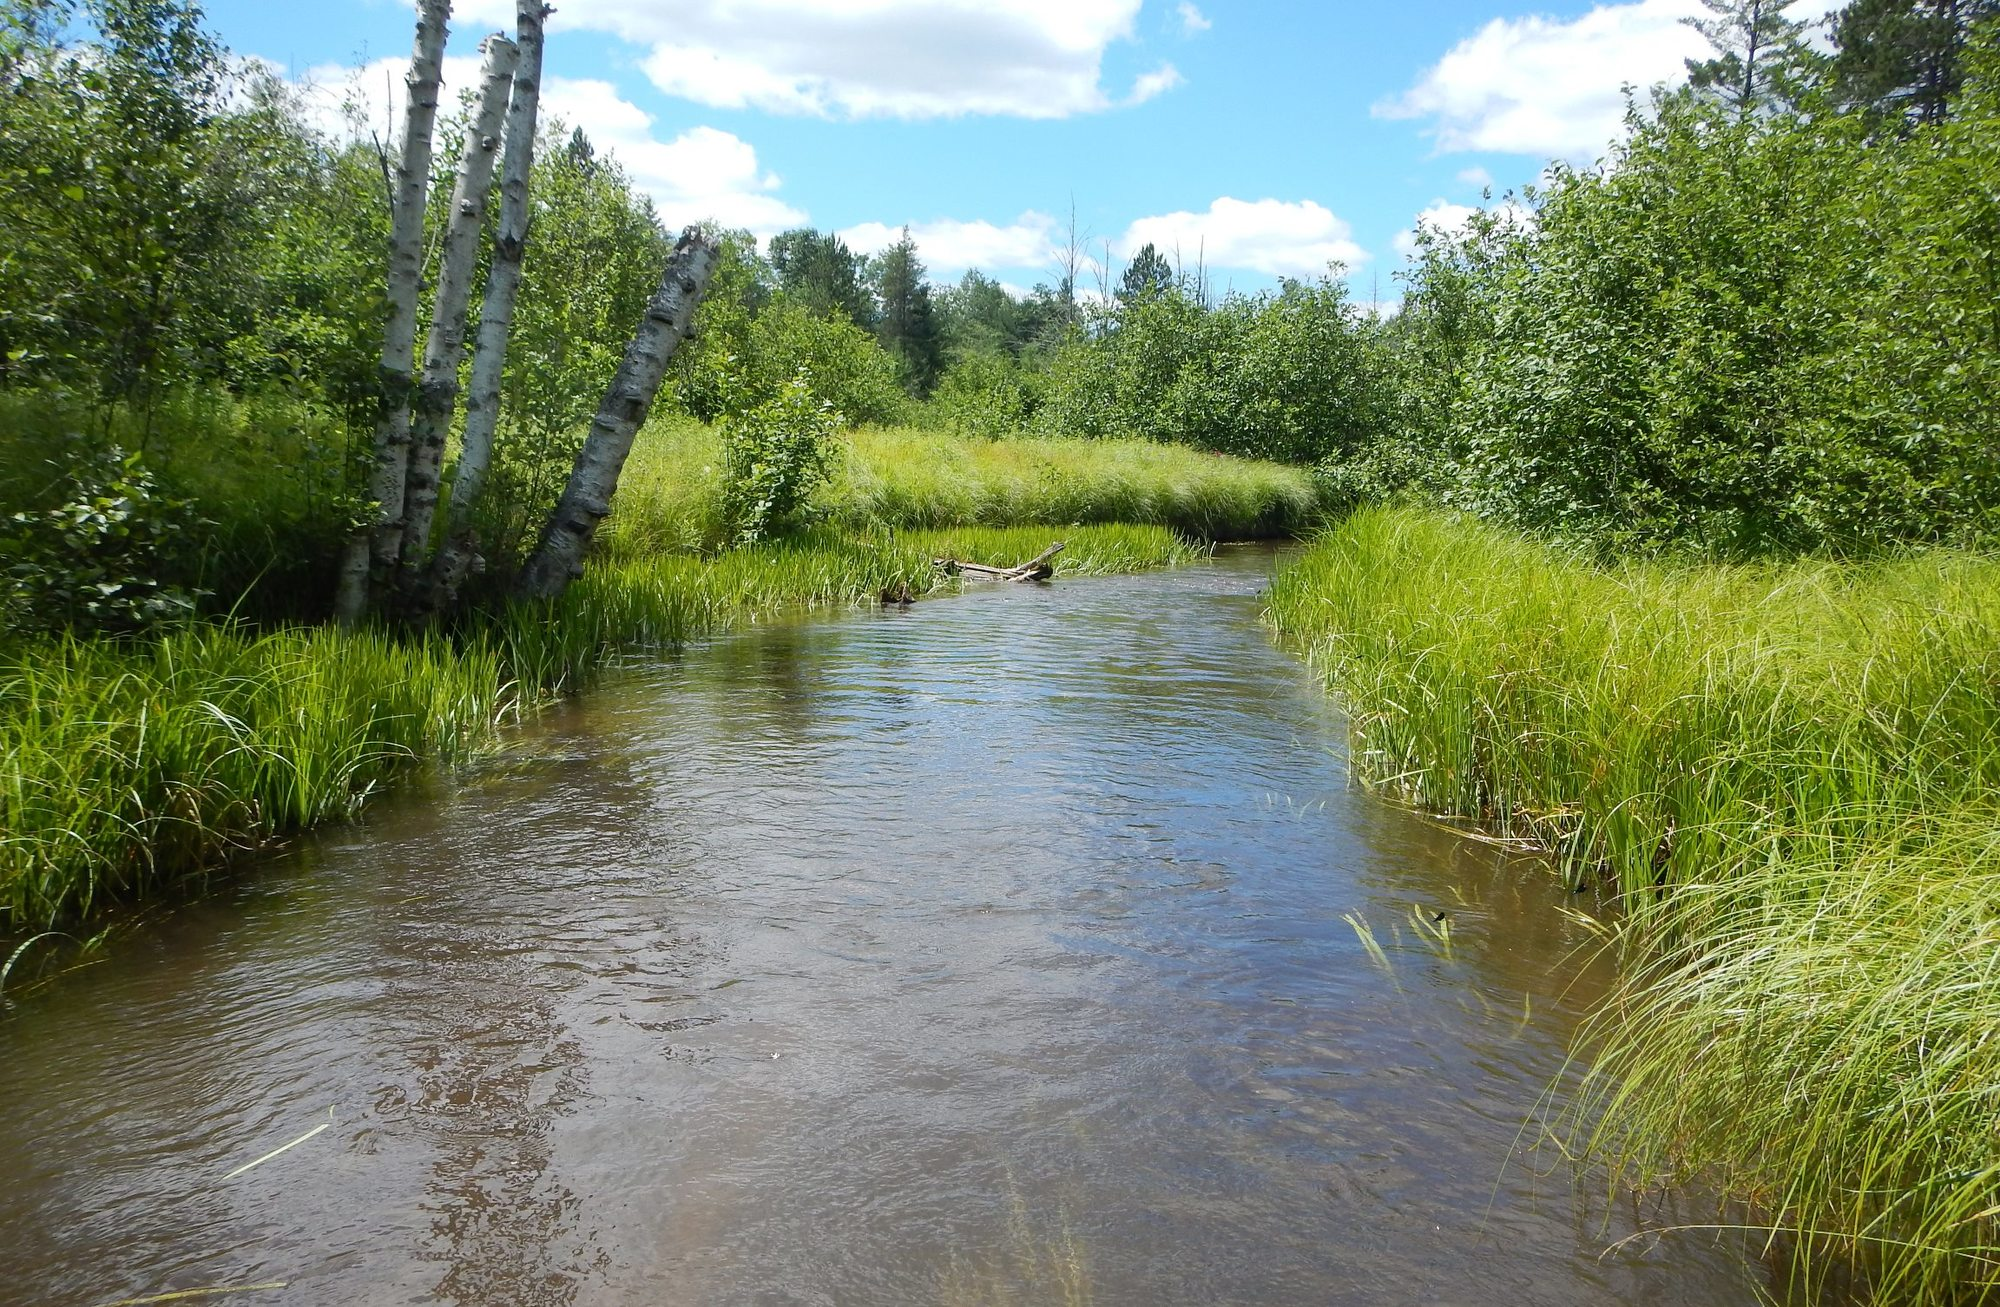 Dnr spring cleaning for streams beneficial to fish habitat for Fish and stream